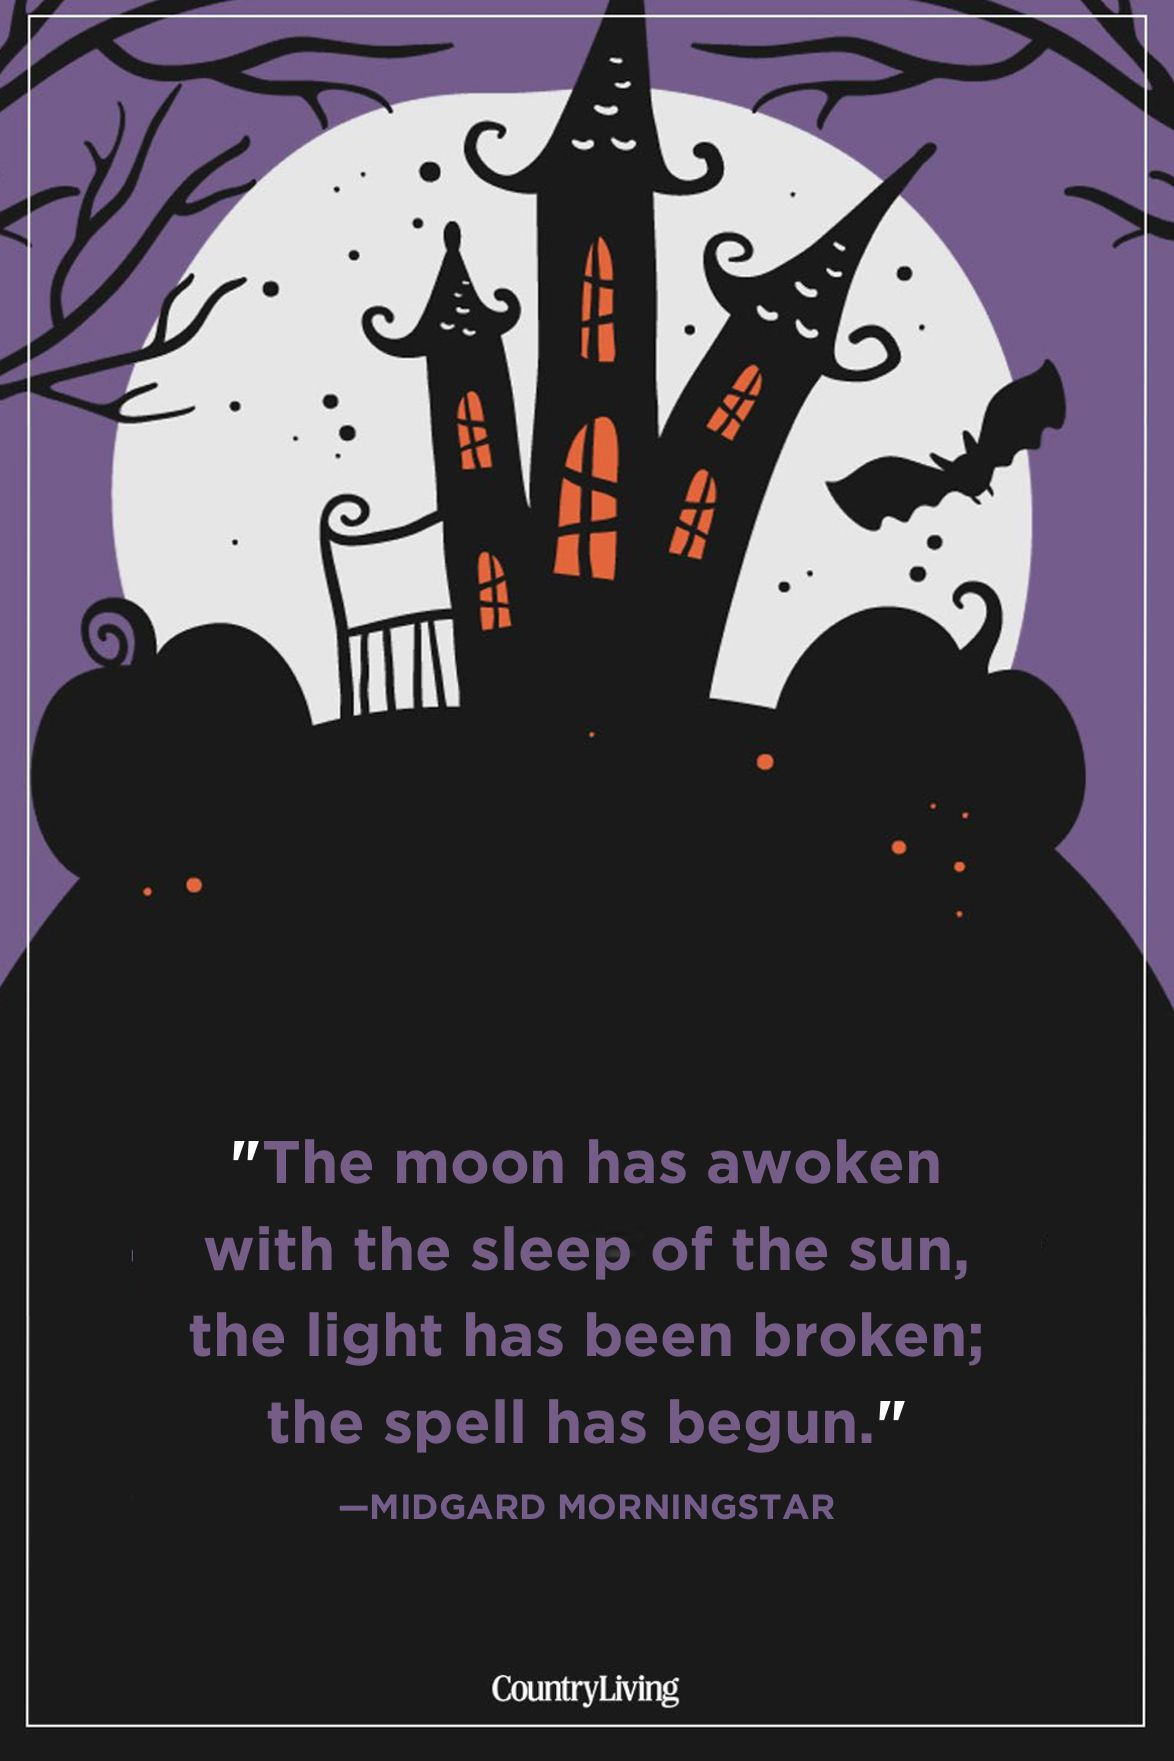 40 Happy Halloween Quotes - Best Spooky Halloween Quotes and Sayings